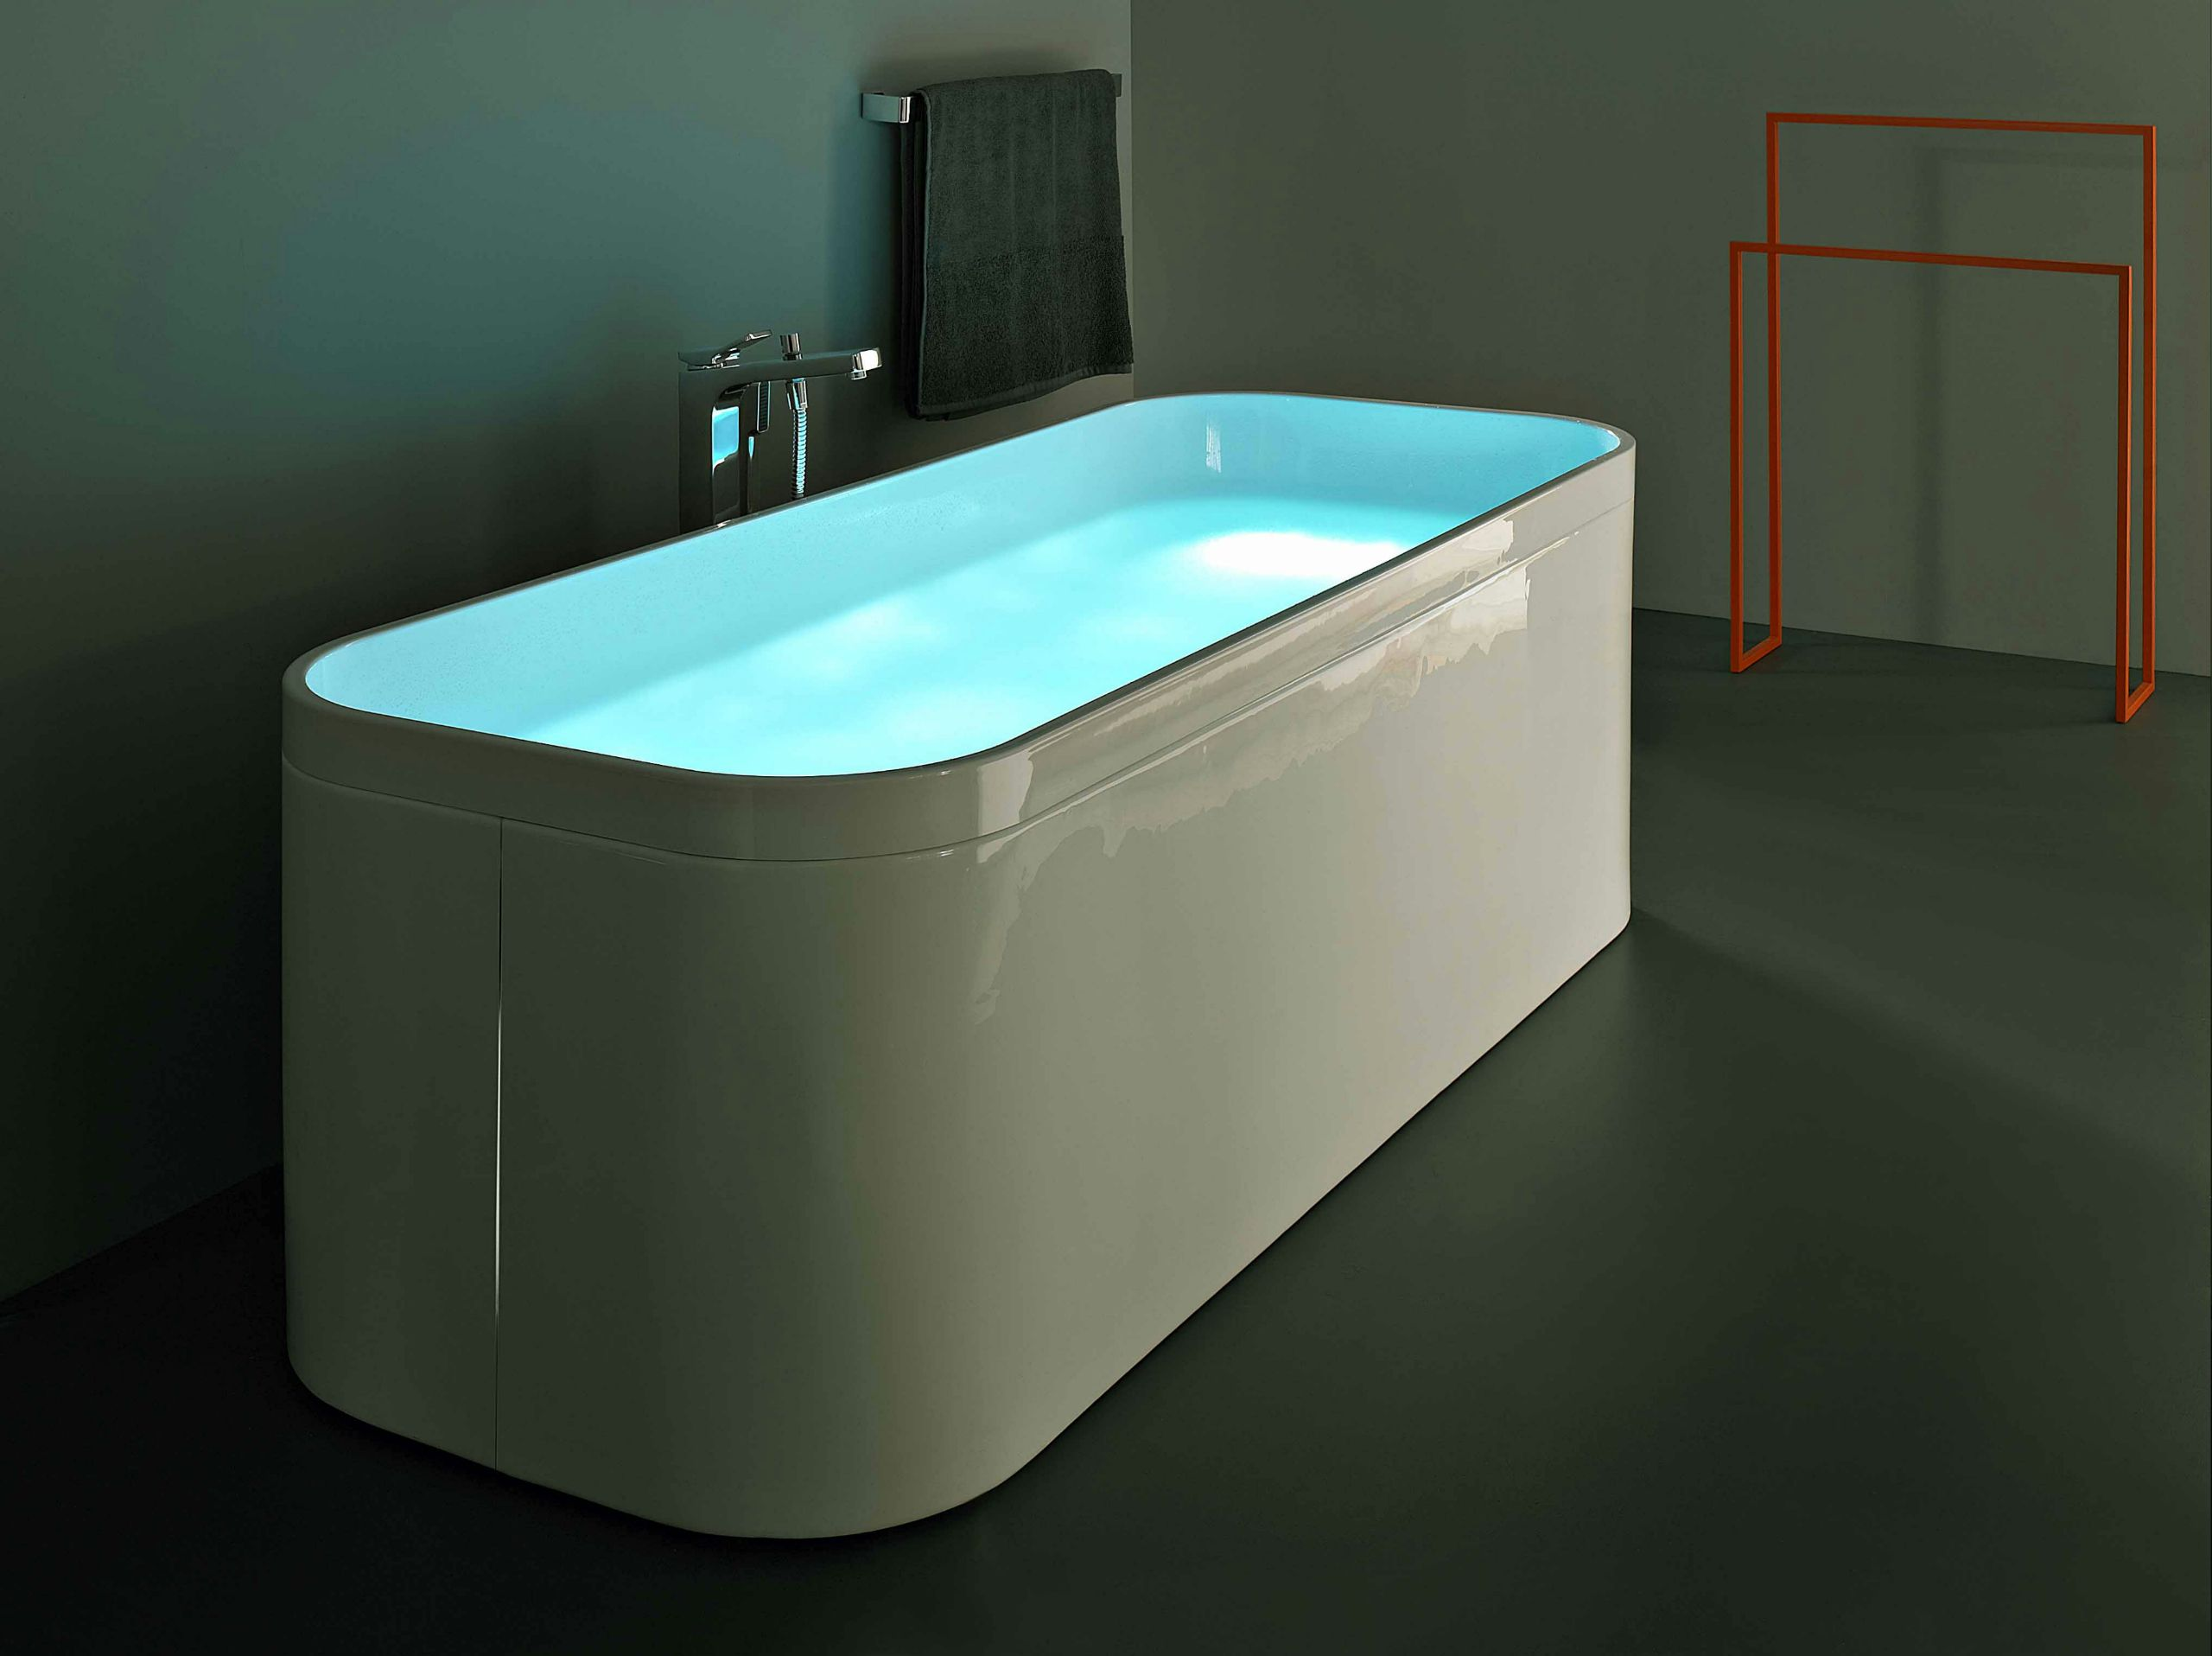 GEO 170X70 | Zucchetti | The best bathtub designs for any luxury ...